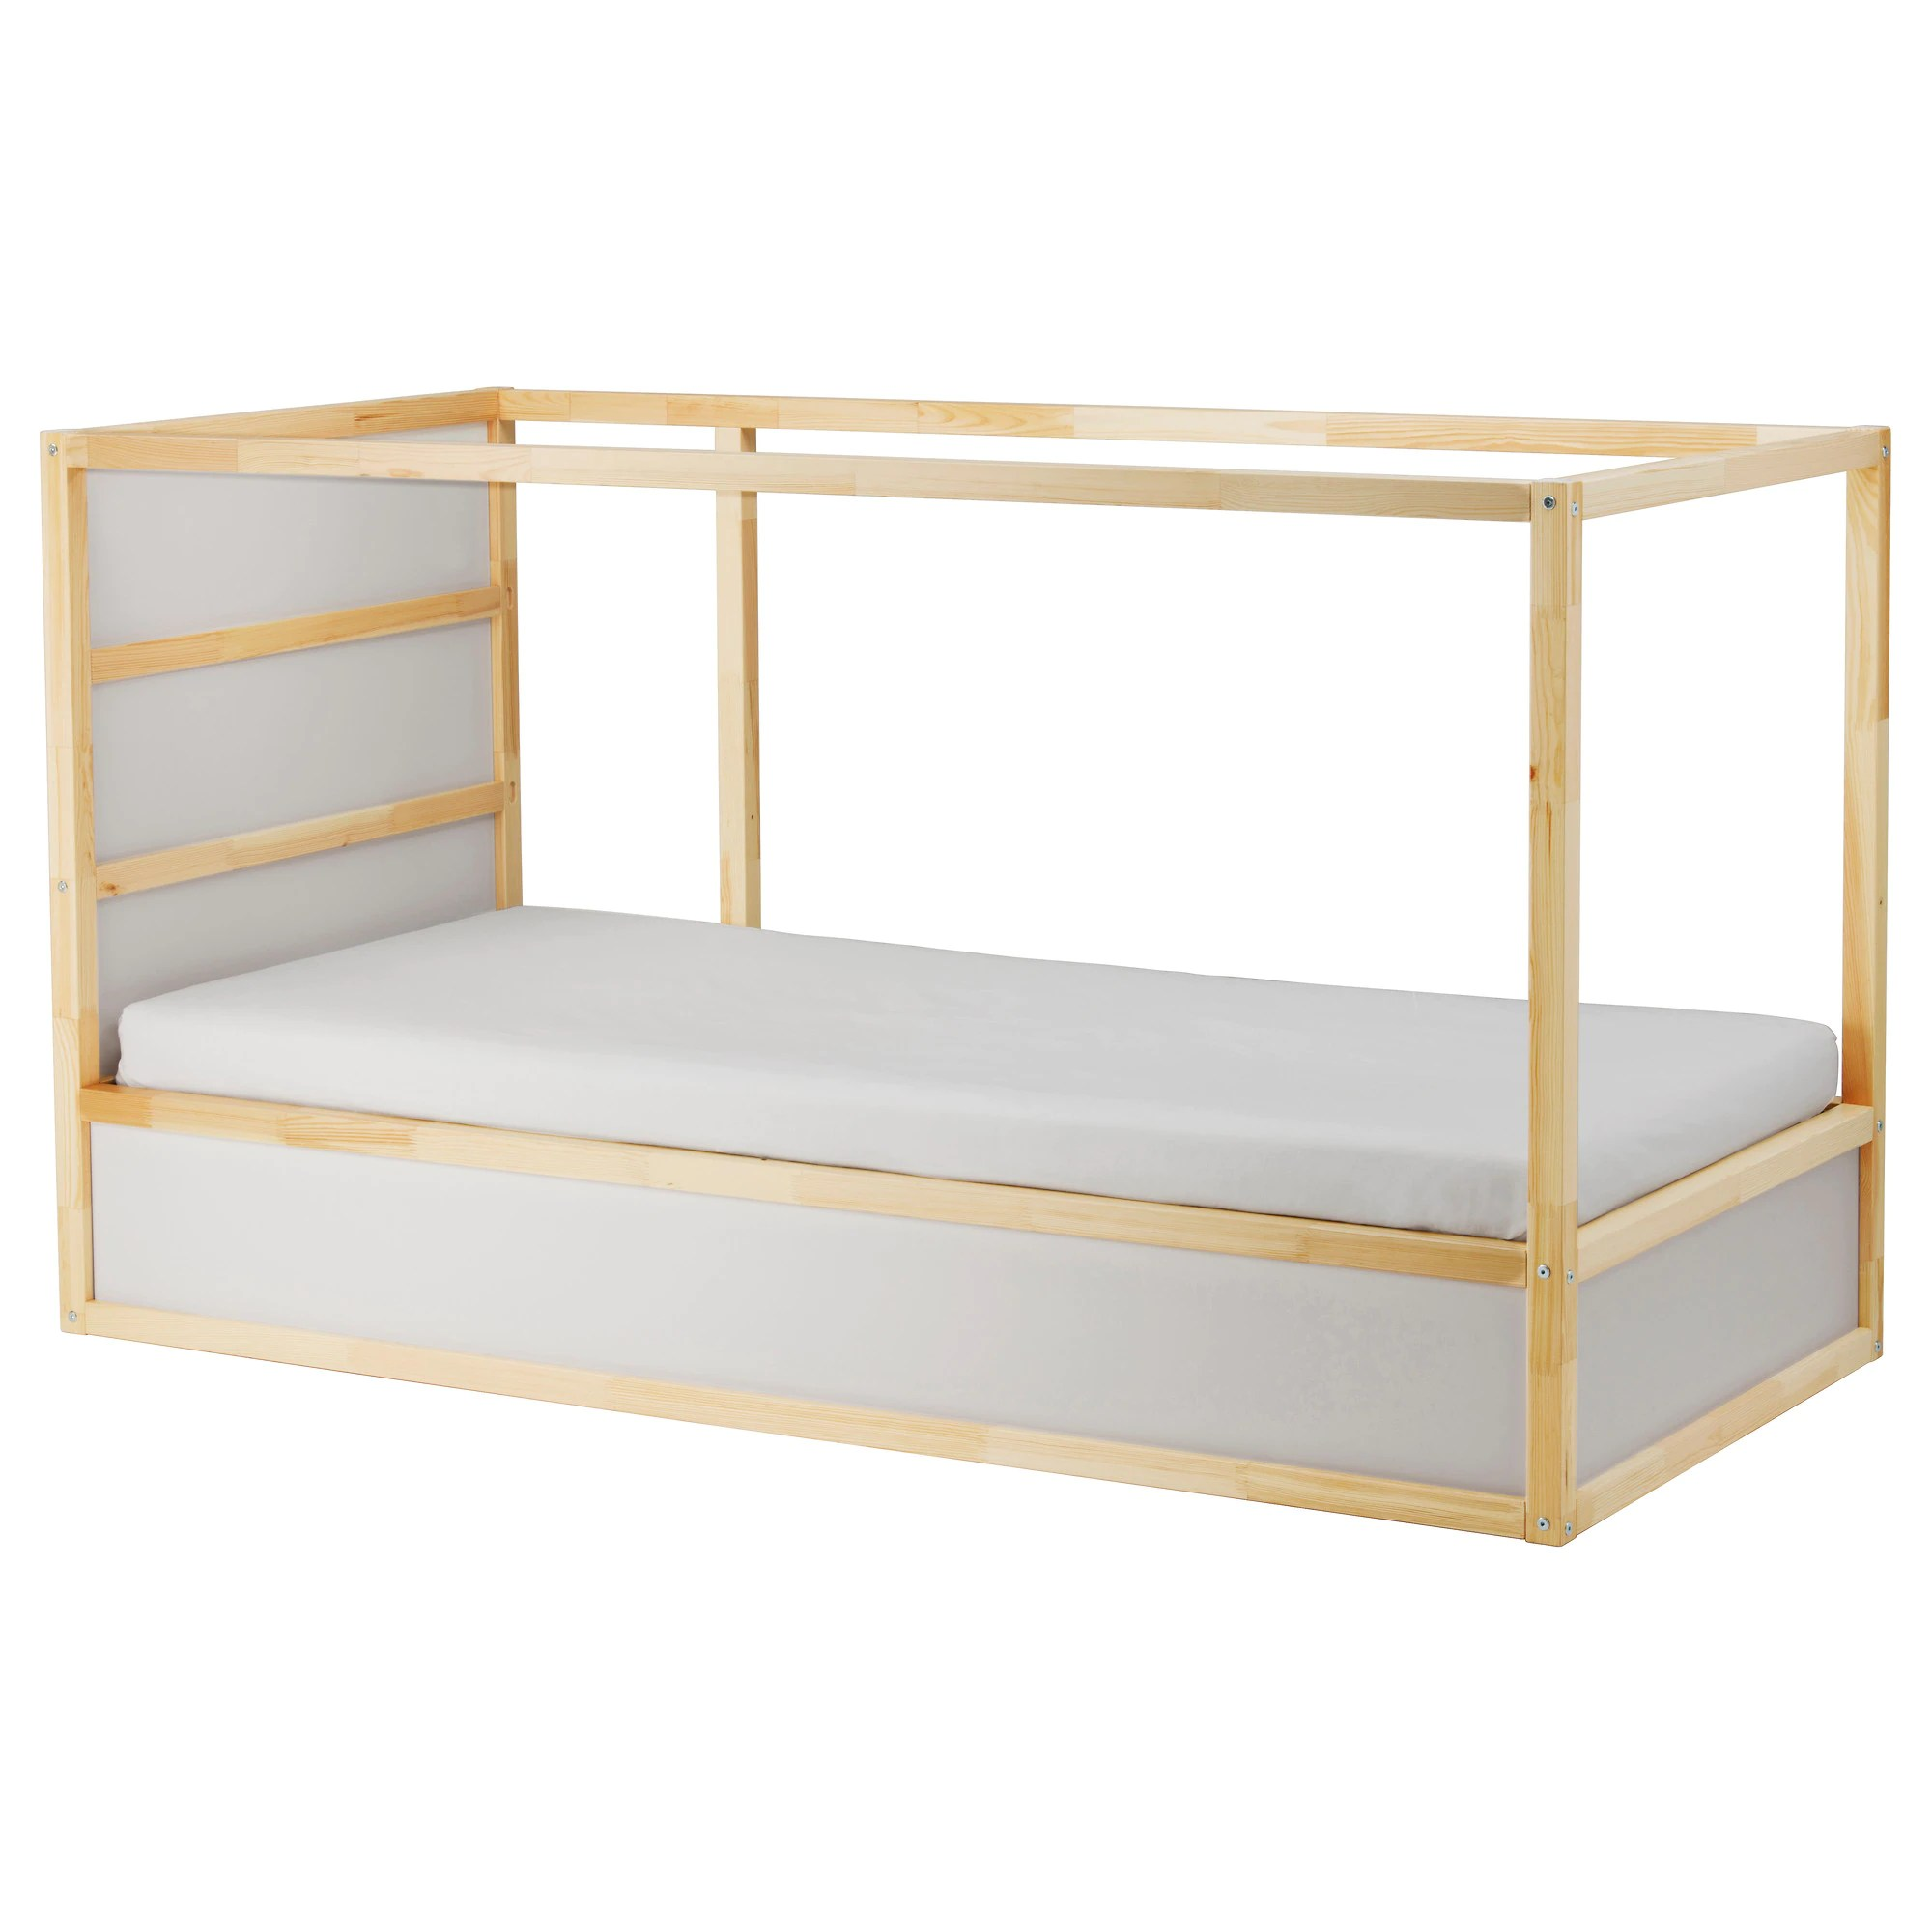 Ikea Bunk Bed Australia Kura Reversible Bed White Pine